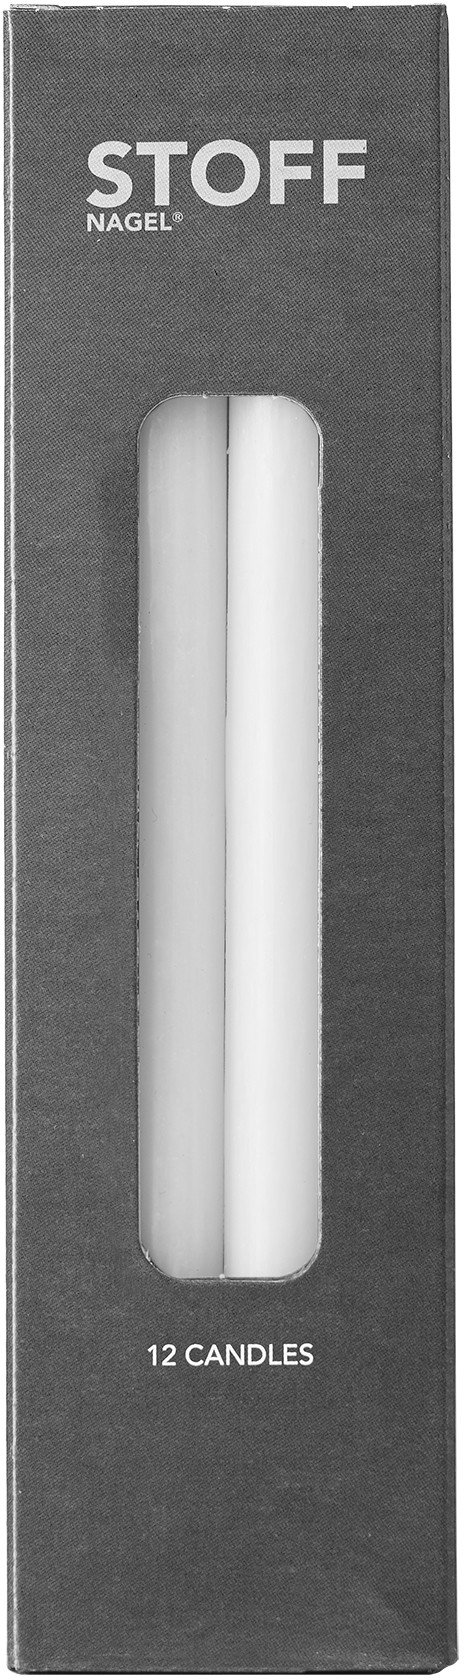 Taper Candles White, Stoff